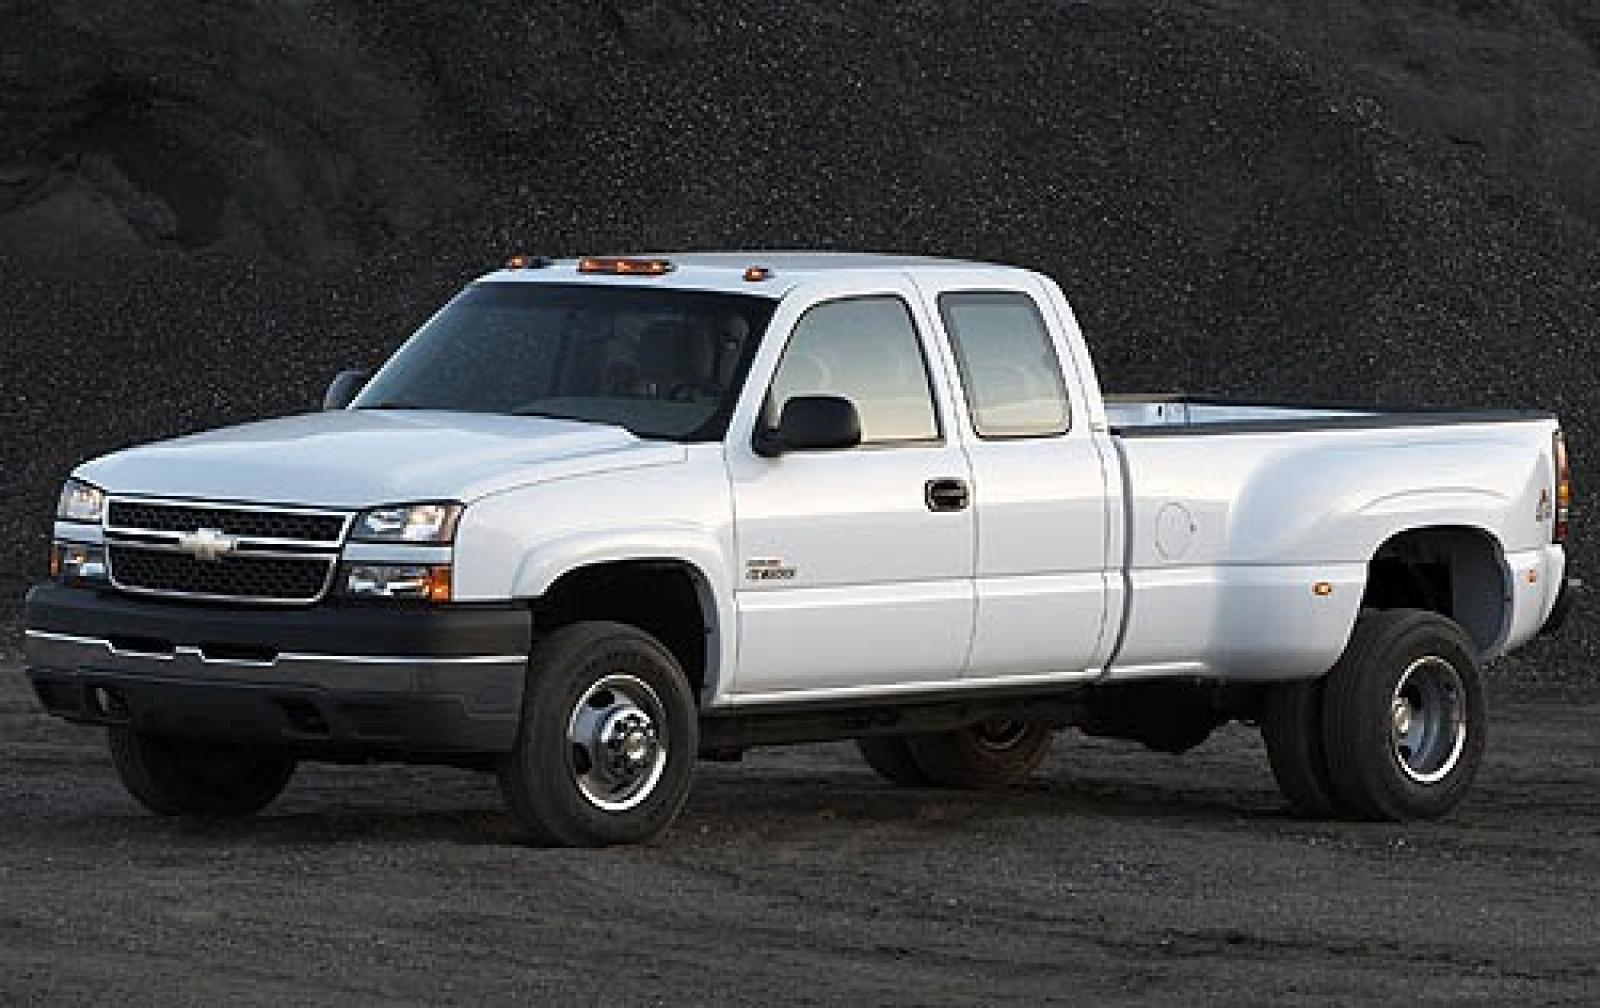 2007 chevrolet silverado 3500 classic information and photos zombiedrive. Black Bedroom Furniture Sets. Home Design Ideas